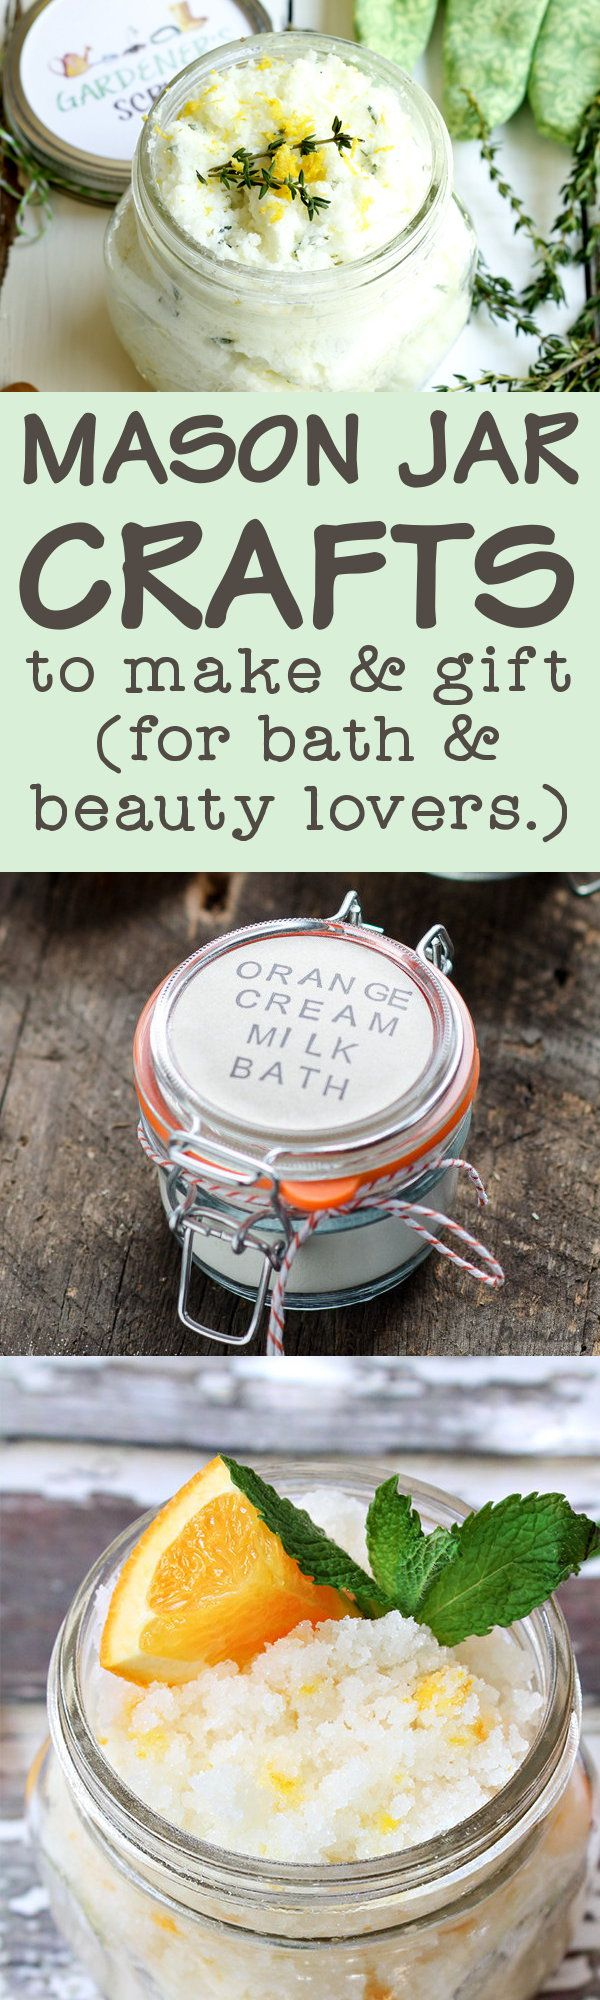 This amazing collection of 40+ mason jar crafts for bath & beauty lovers are a great way to reuse your mason jars again and again. Not only can you make these skin worthy mason jar crafts for and your family, they're also great for gifting year round for just about anyone on your list!